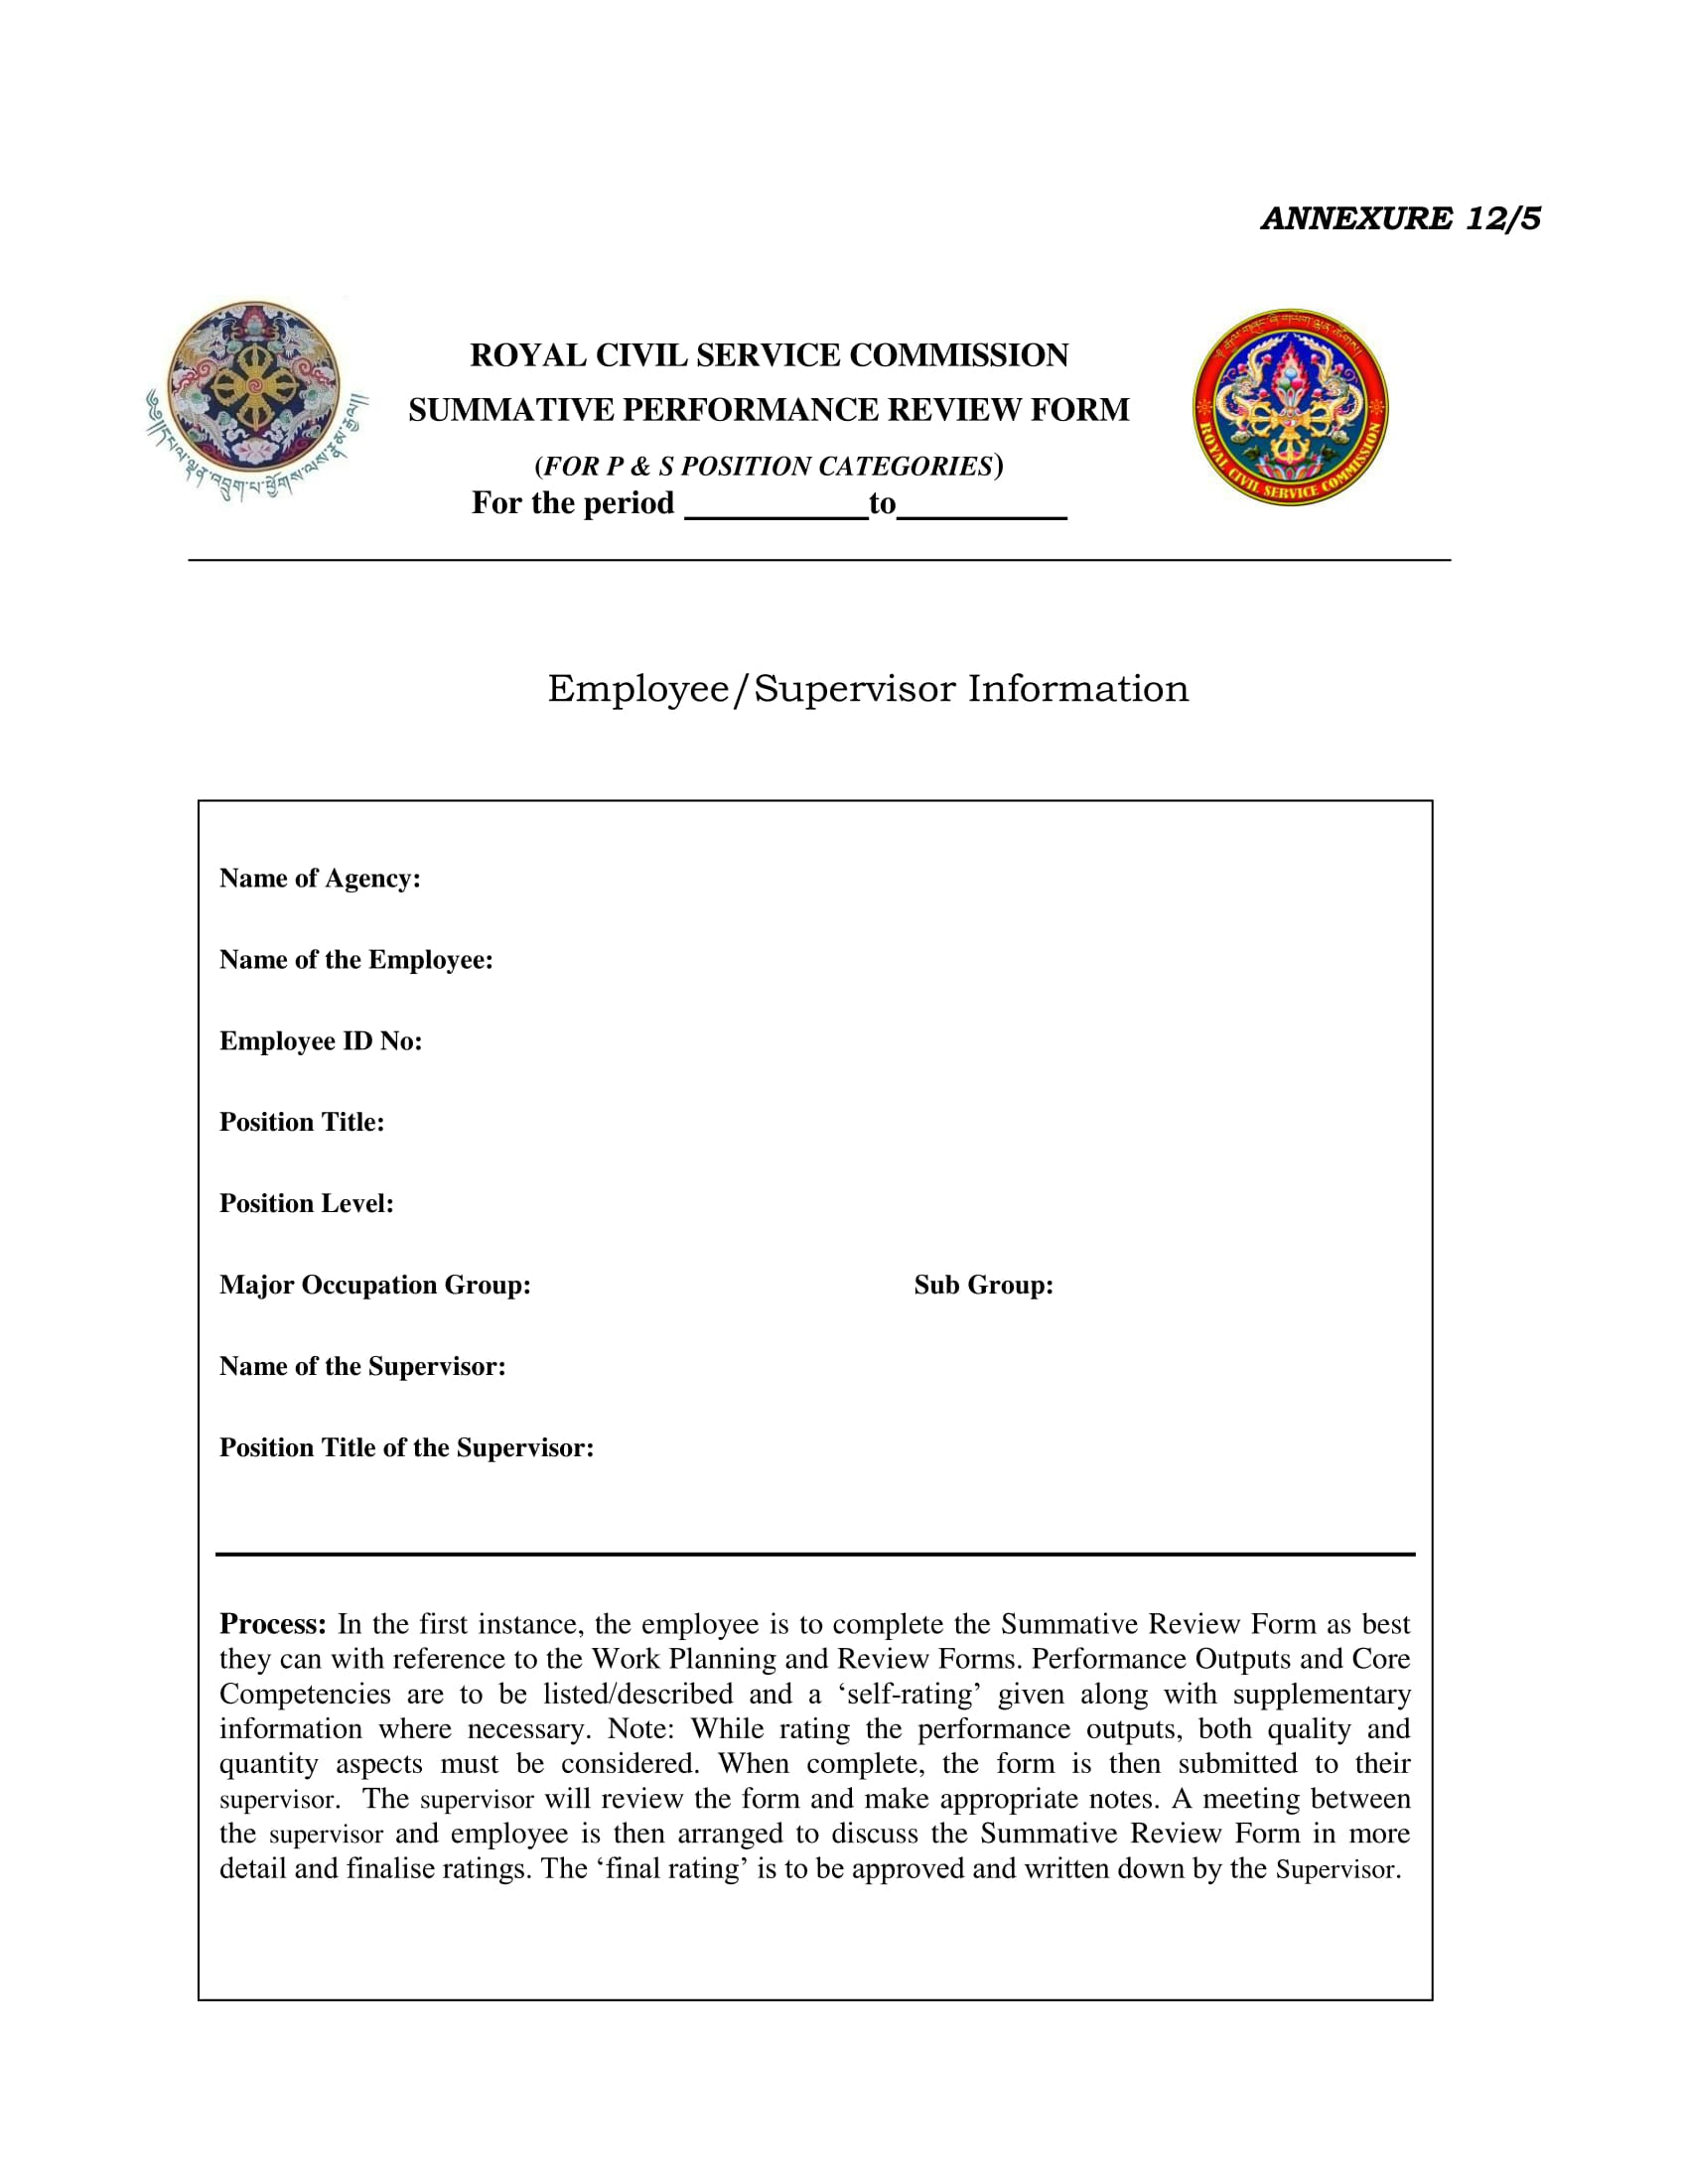 summative employee performance review form 11